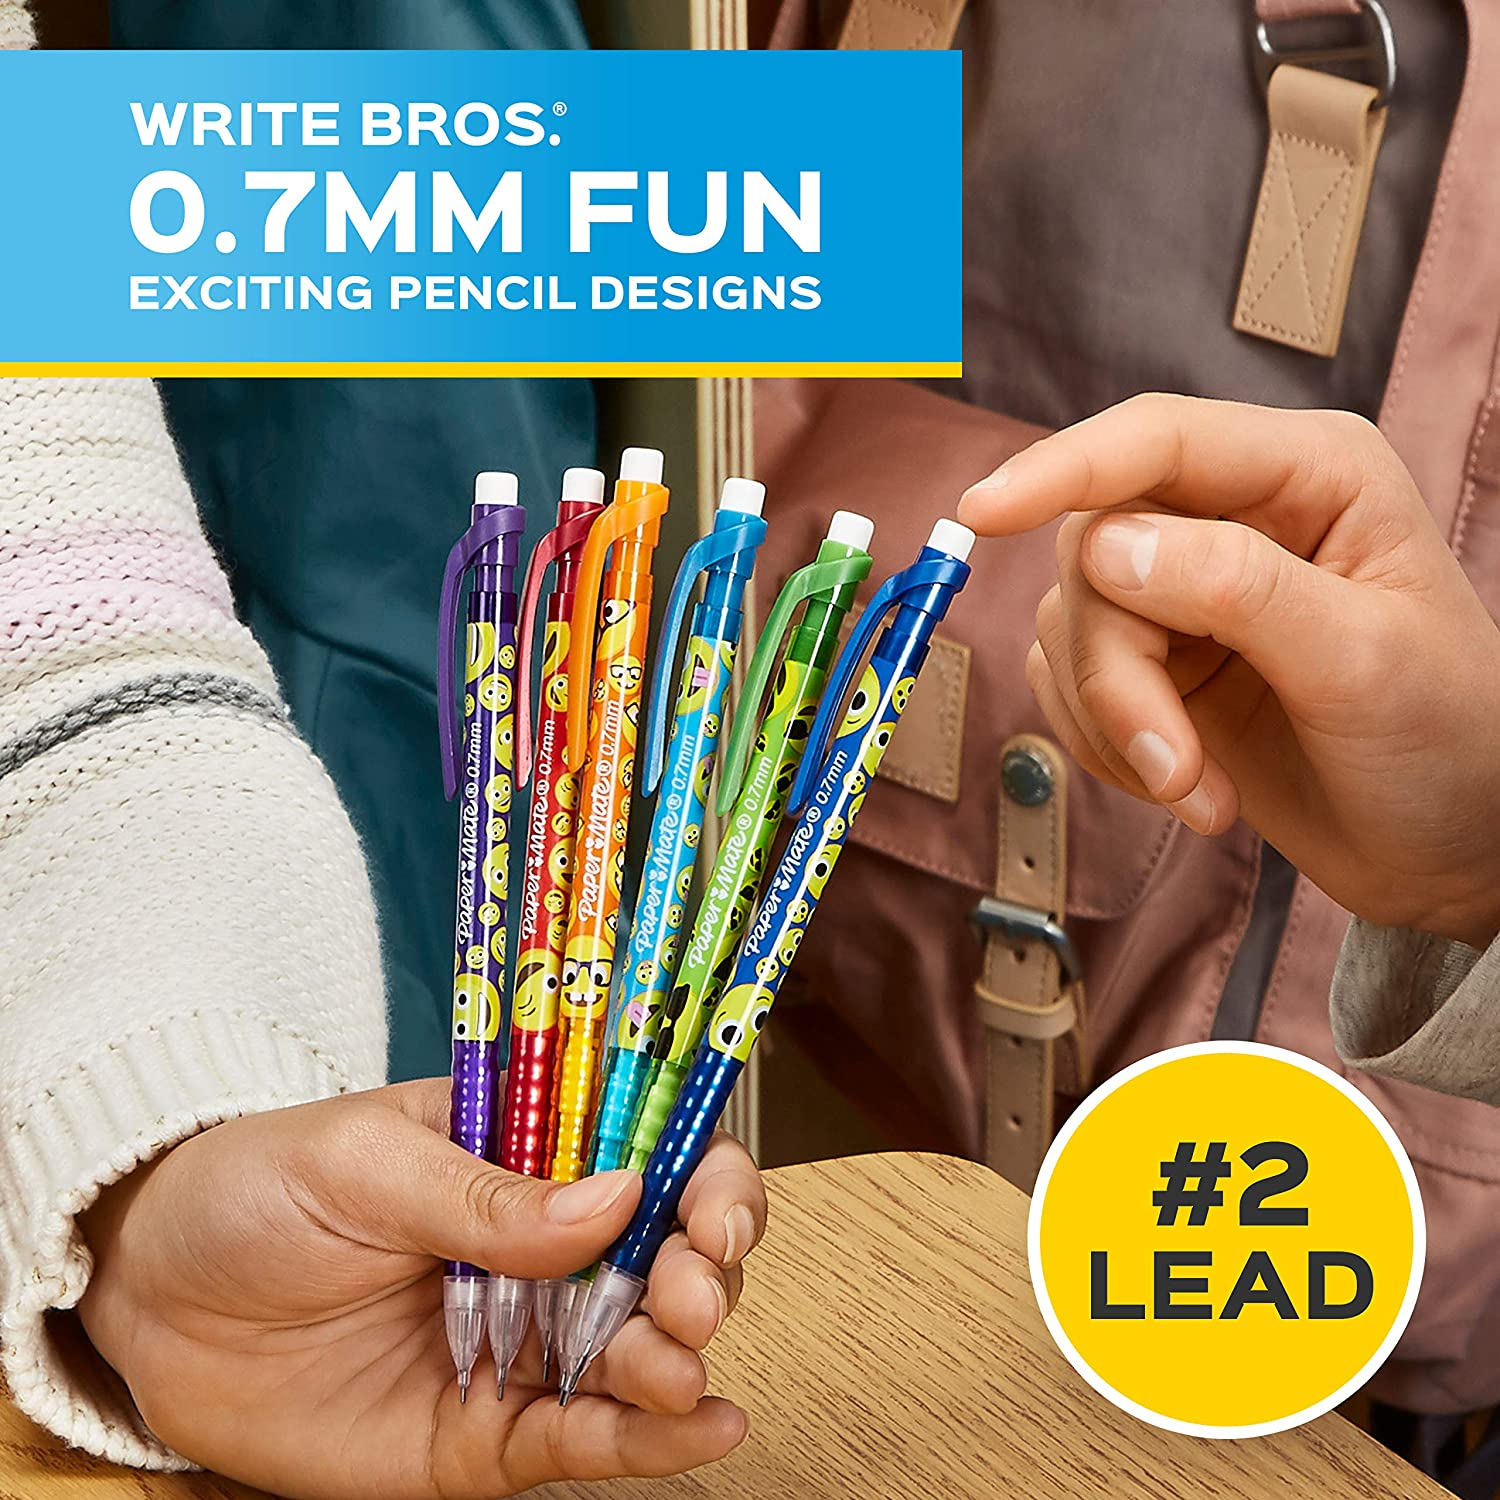 Paper Mate Mechanical Pencils Fun #2 Pencil with Colorful Designs 24 Count 0.7mm Write Bros